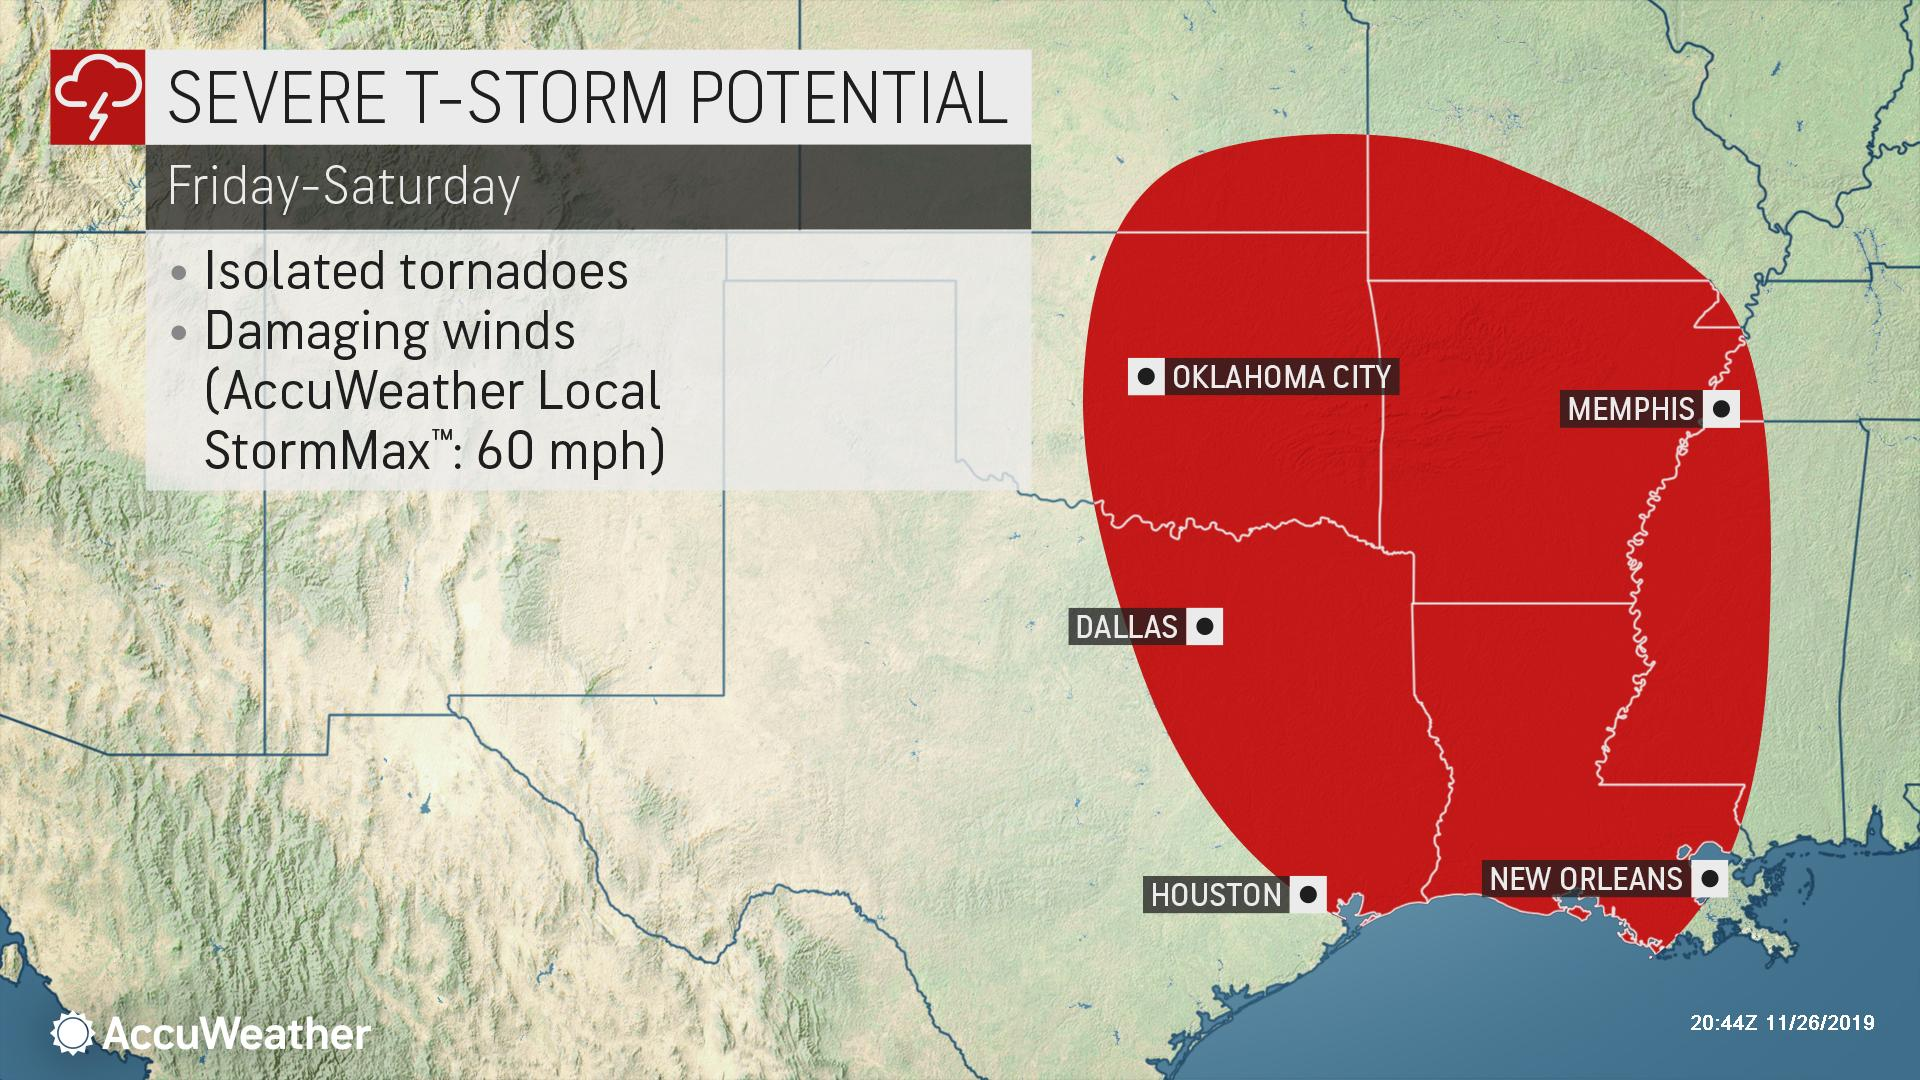 Far-reaching storm to stir severe weather risk in south-central US to end this week